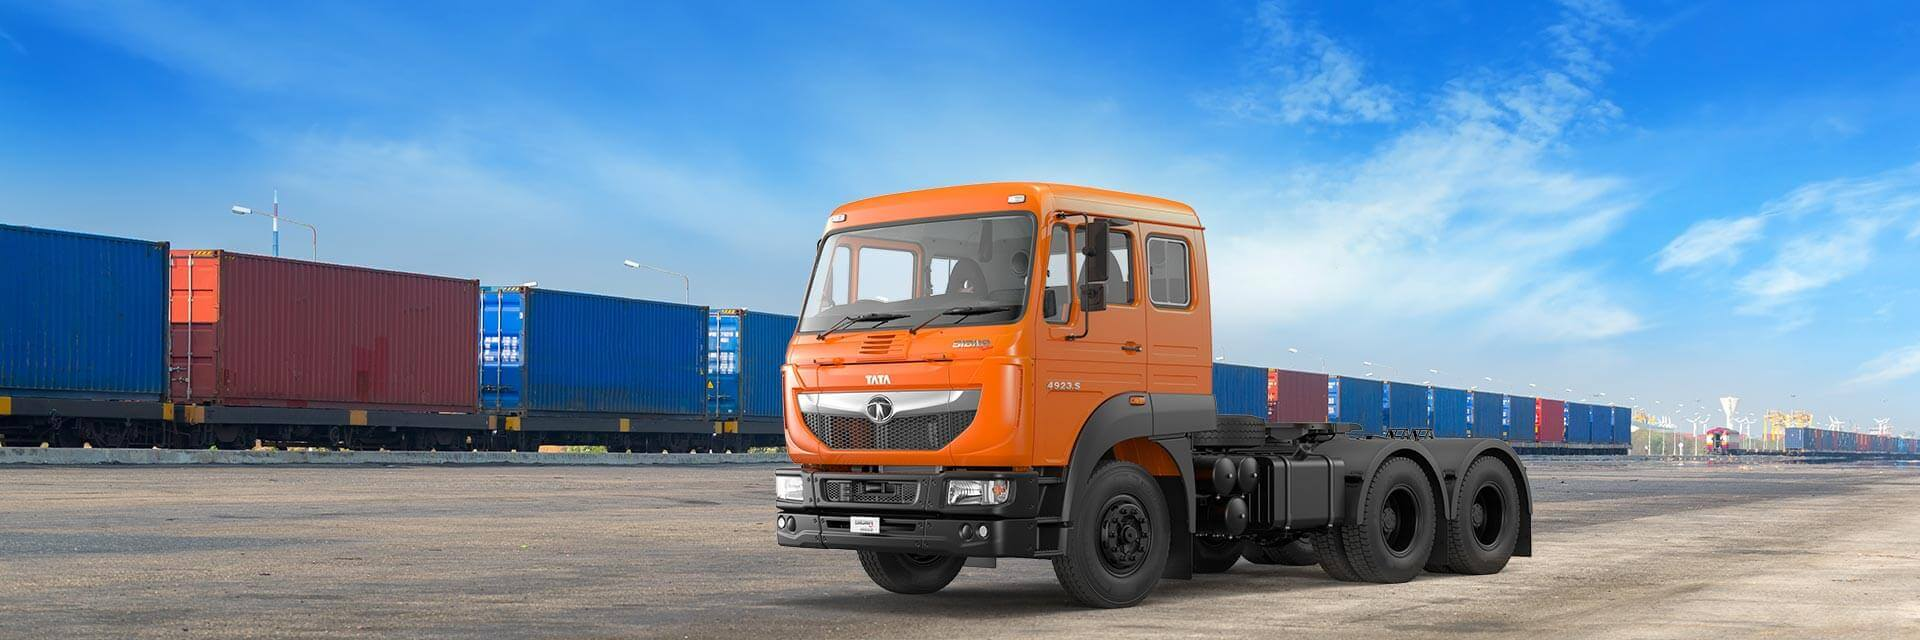 Tata Signa 4923.S Trucks Specifications - Engine, kes ... on